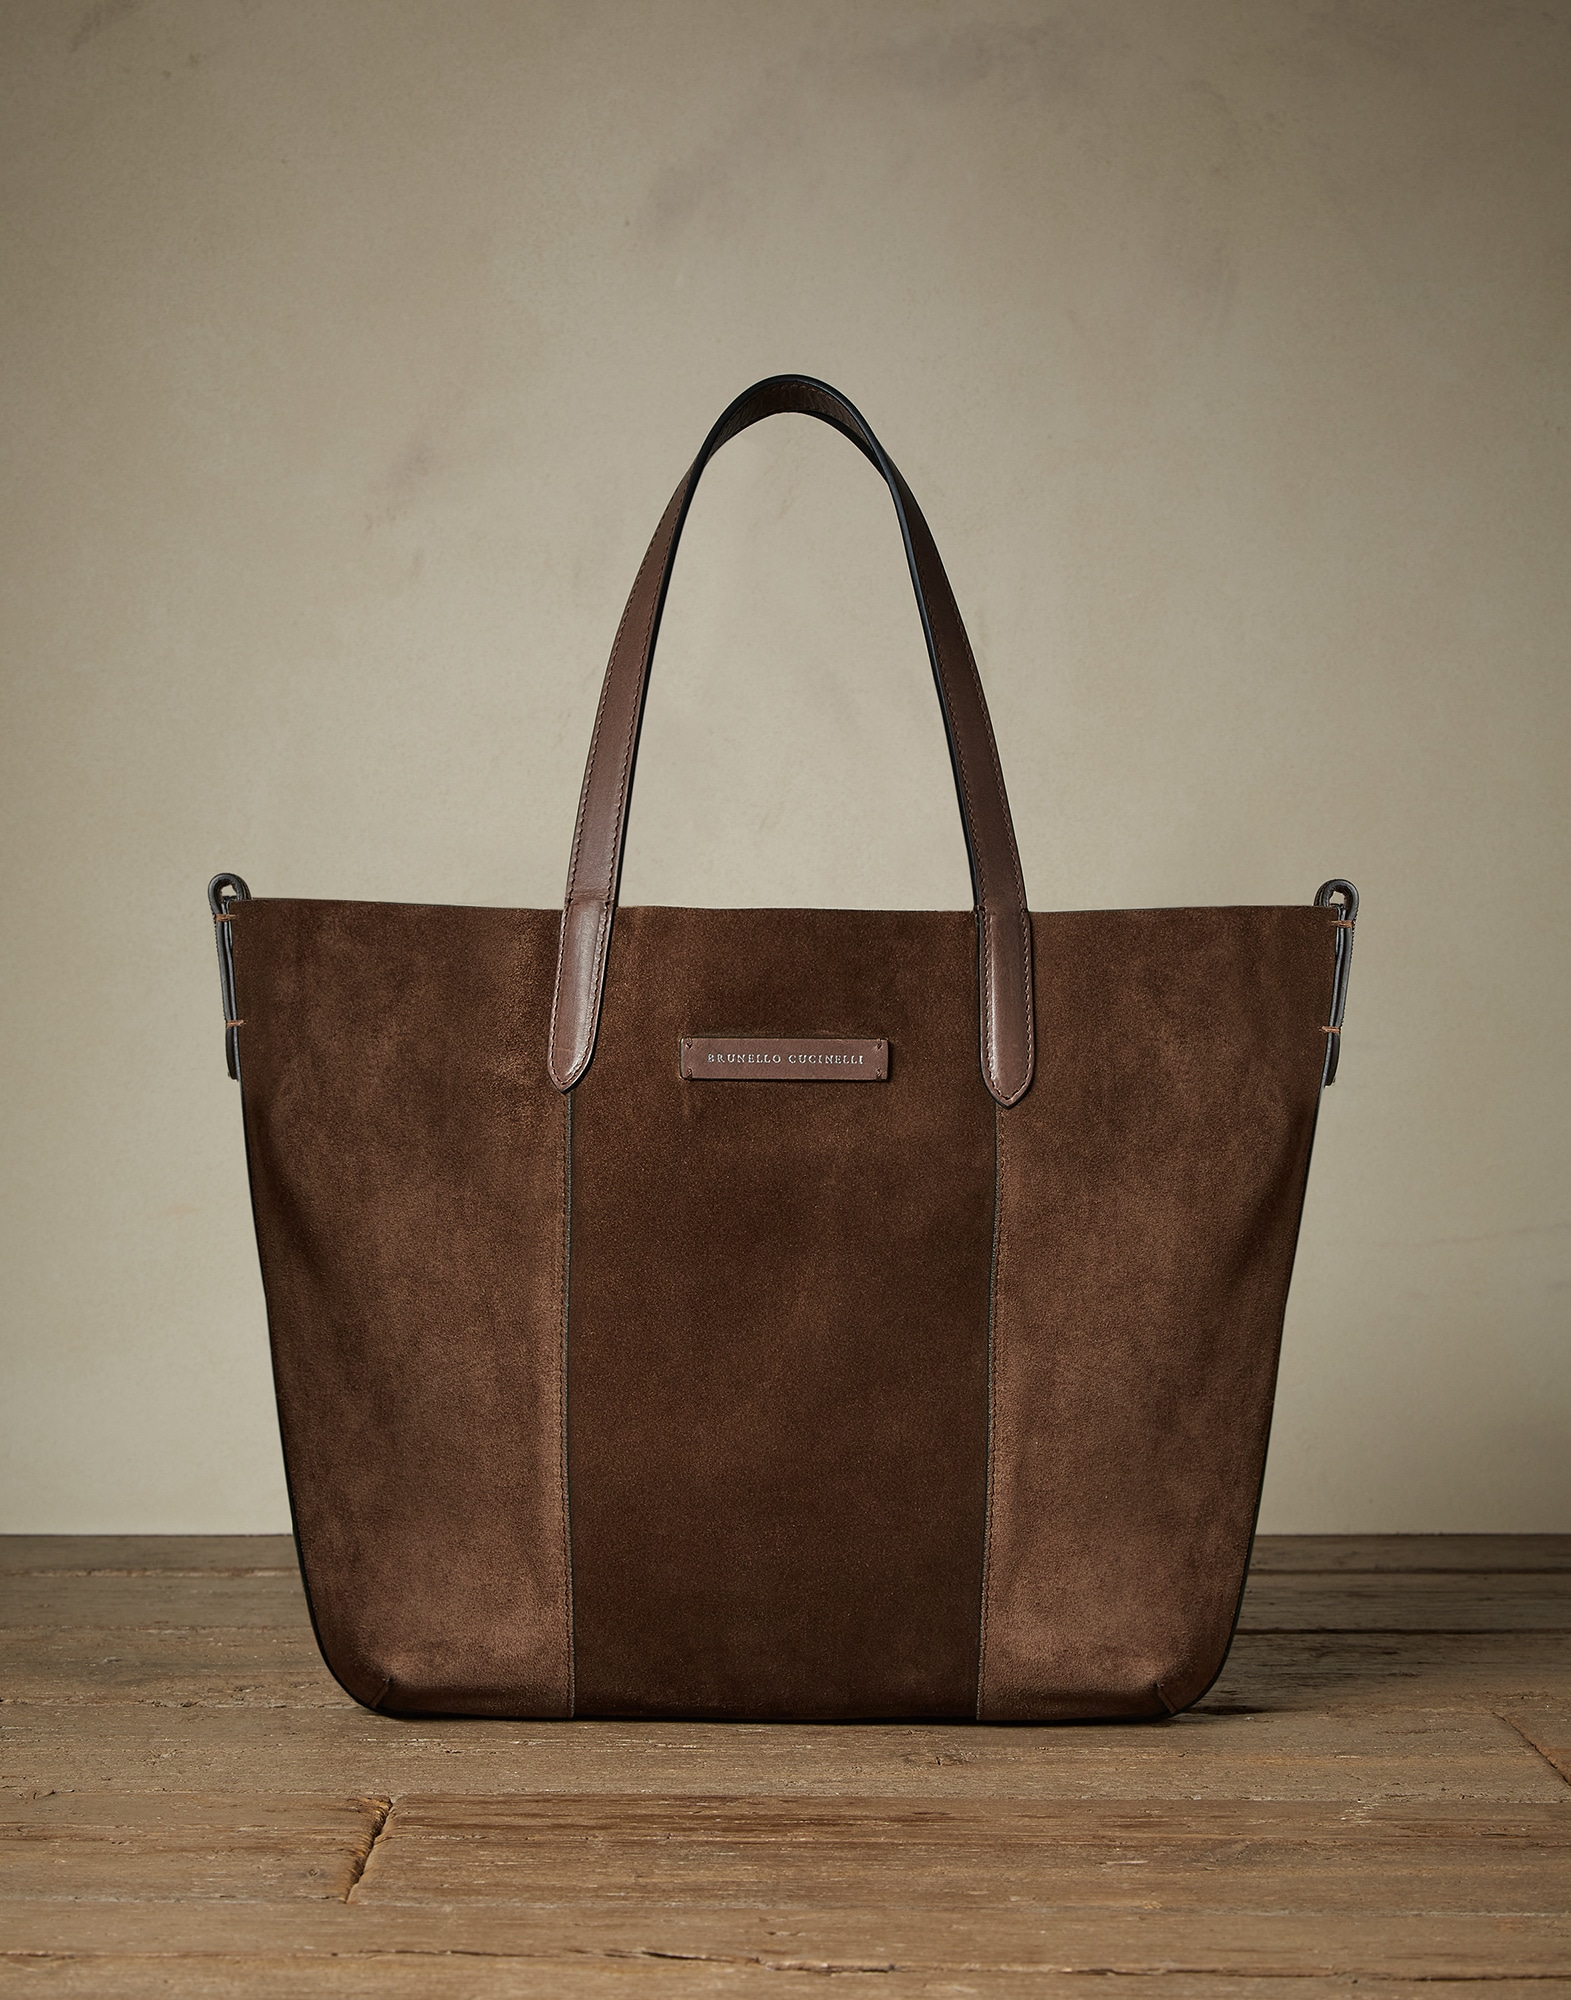 Shopper Bag - Front view